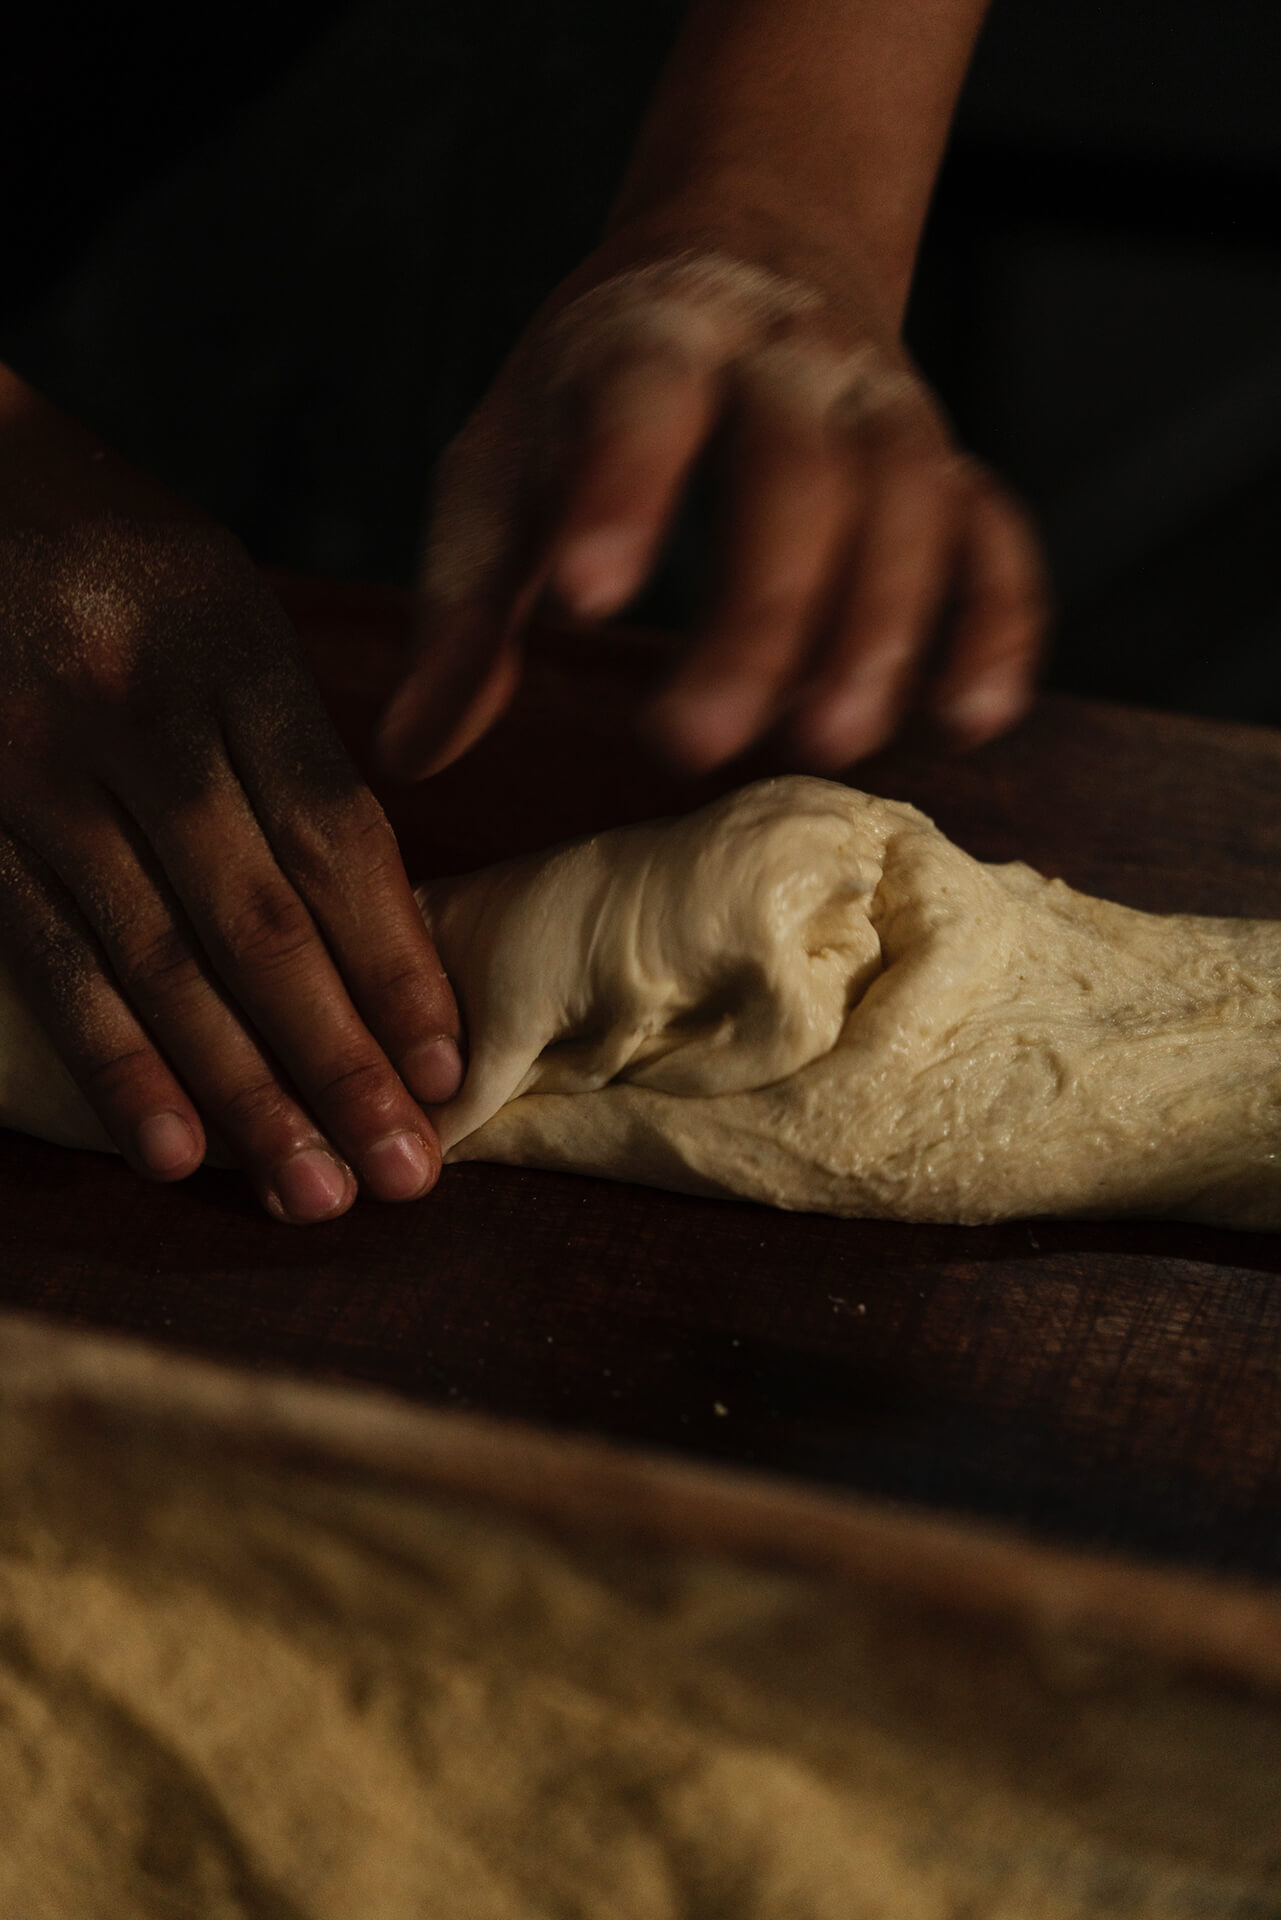 A baker kneads and shapes the dough to prepare it for cutting